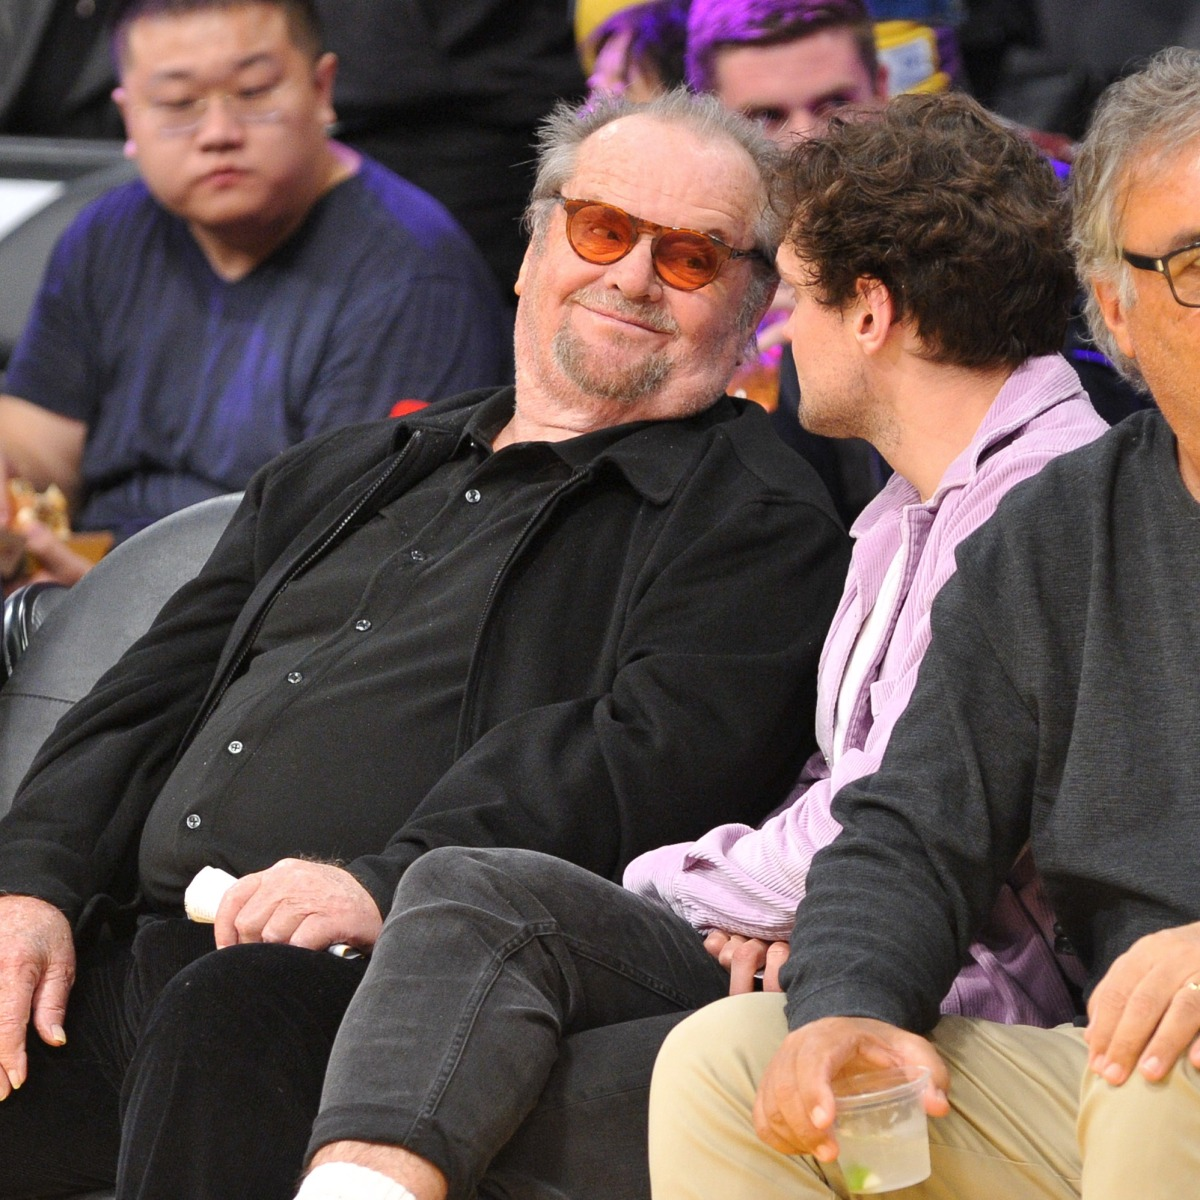 Jack Nicholson Makes Rare Public Appearance With Son Ray At Game Ray made his acting debut in the 2006 film benchwarmers, this year he starred as greg in the t.v series r.i.p. https www closerweekly com posts jack nicholson makes rare public appearance with son ray at game